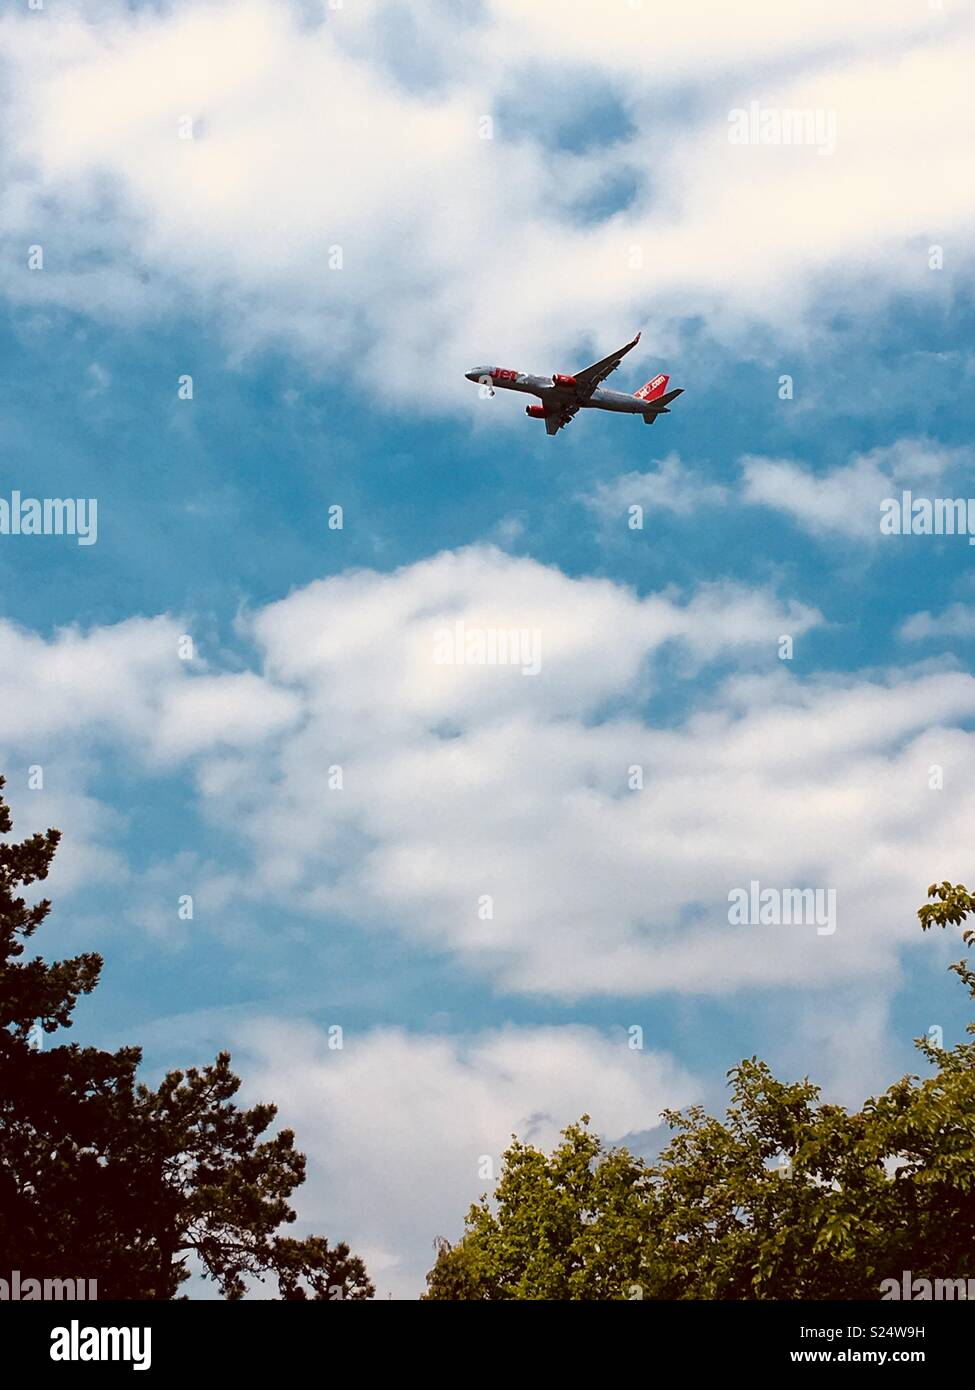 Jet 2 plane flying over Bruntwood Park in Cheadle, UK - Stock Image